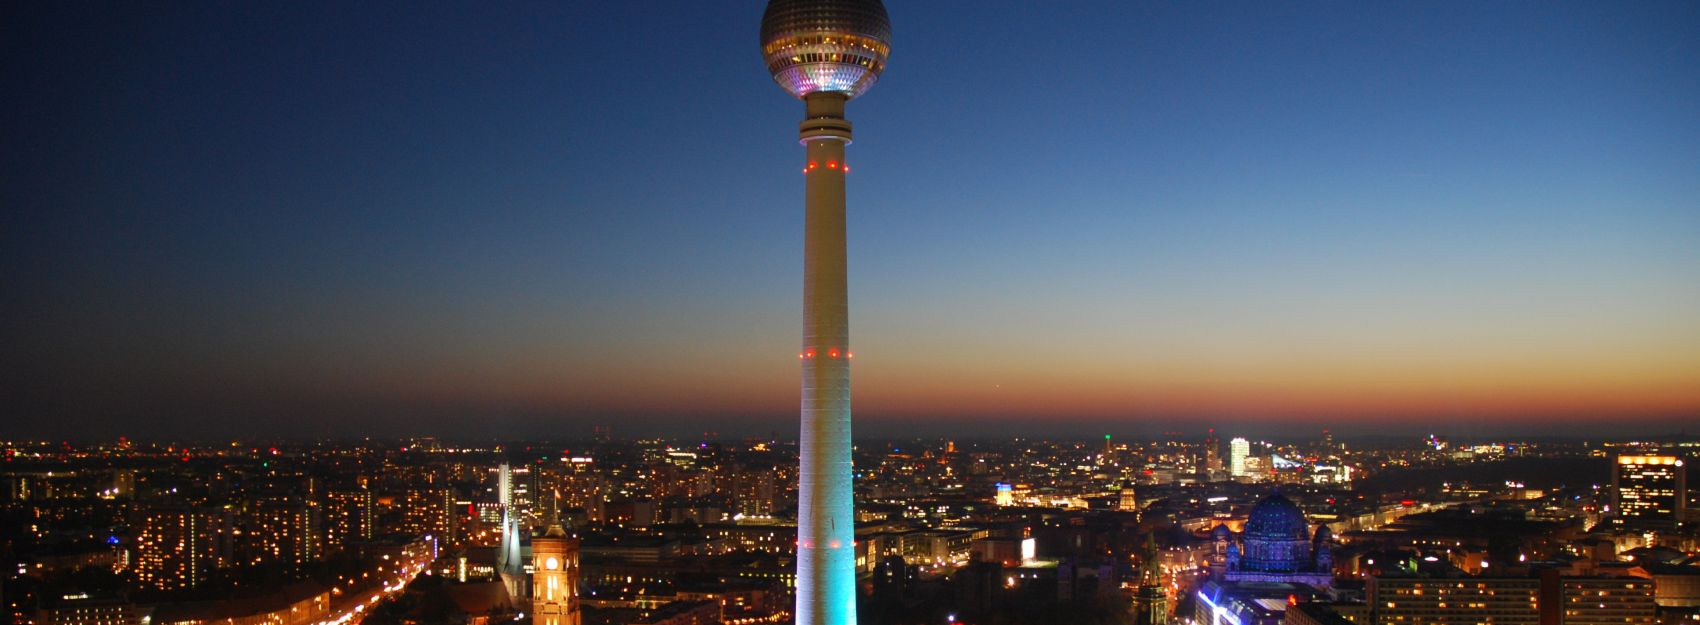 Berlin skyline at night, with the Berlin TV Tower at the center.